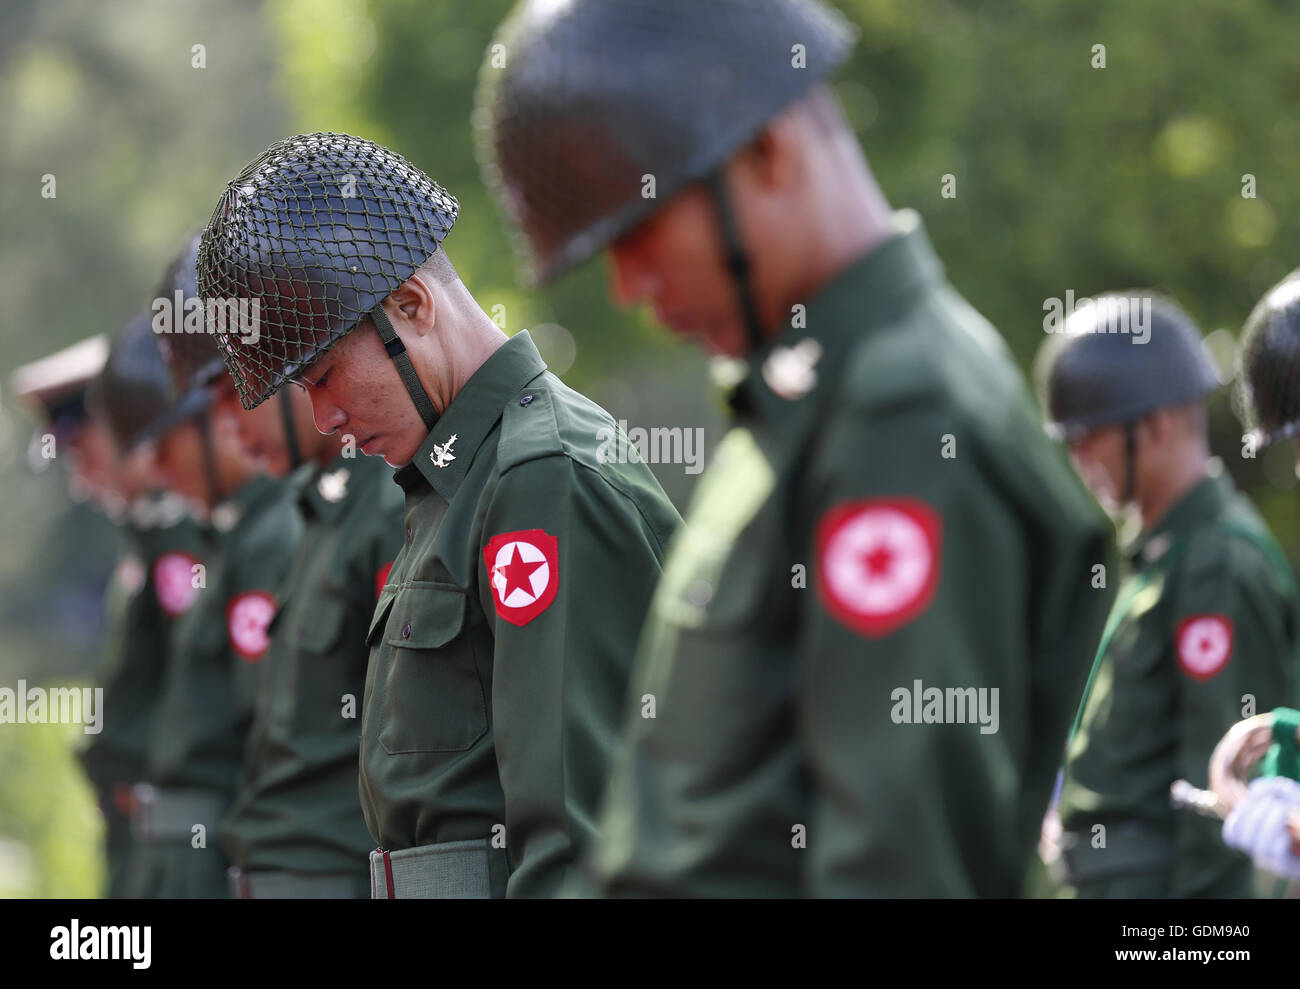 Yangon, Myanmar. 19th July, 2016. Honor guards take part in a ceremony to mark the 69th Martyrs' Day in Yangon, - Stock Image